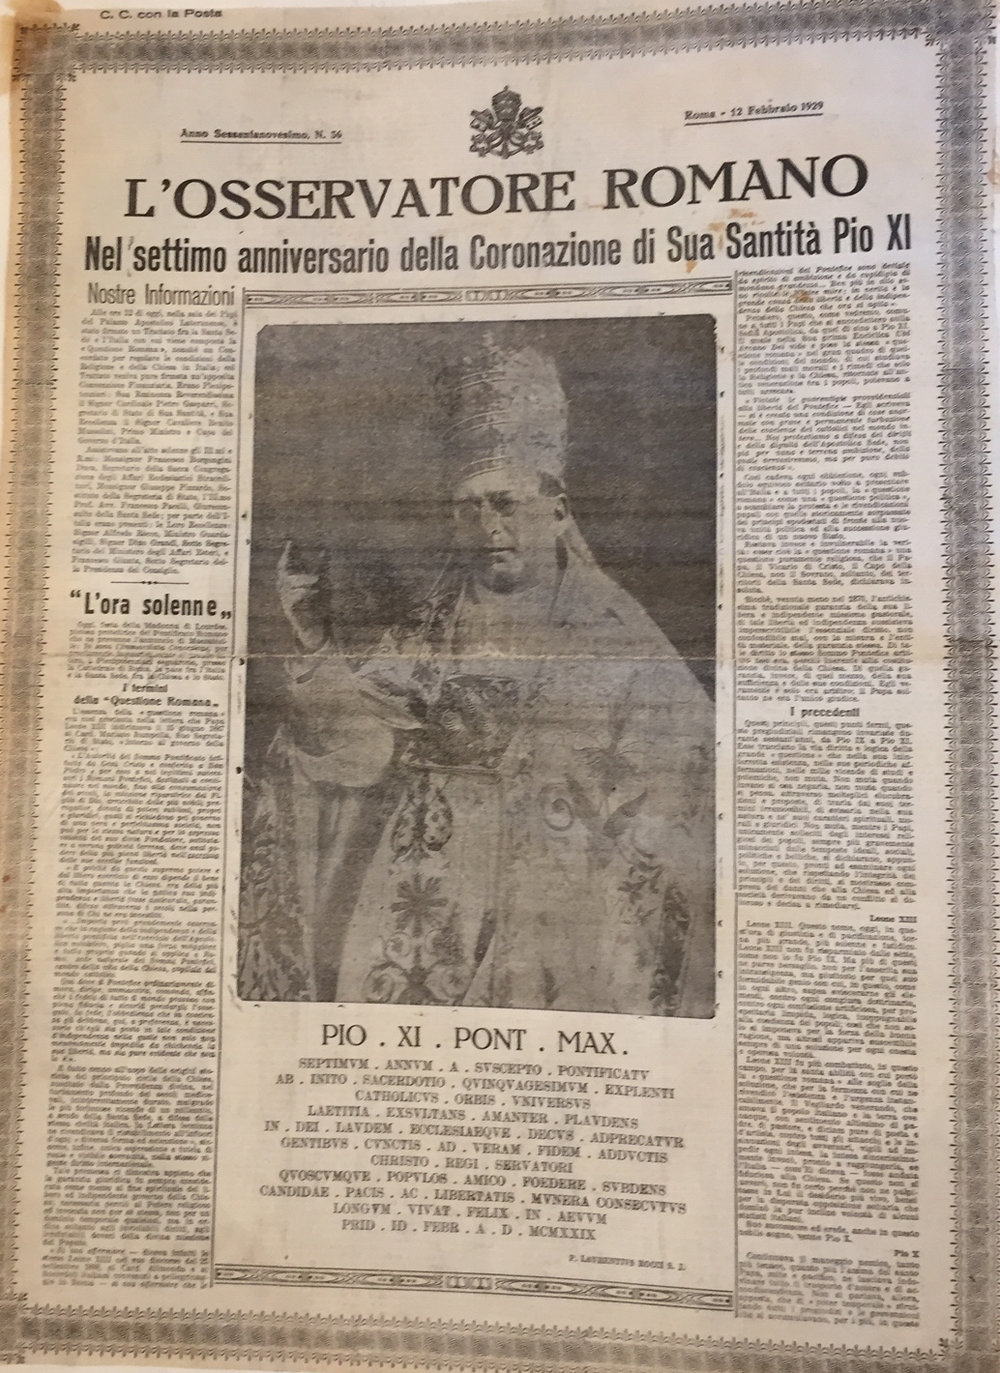 L'Osservatore Romano  for Tuesday, 12 February 1929, celebrating the seventh anniversary of Pope Pius XI   AVCAU, Newspaper collection